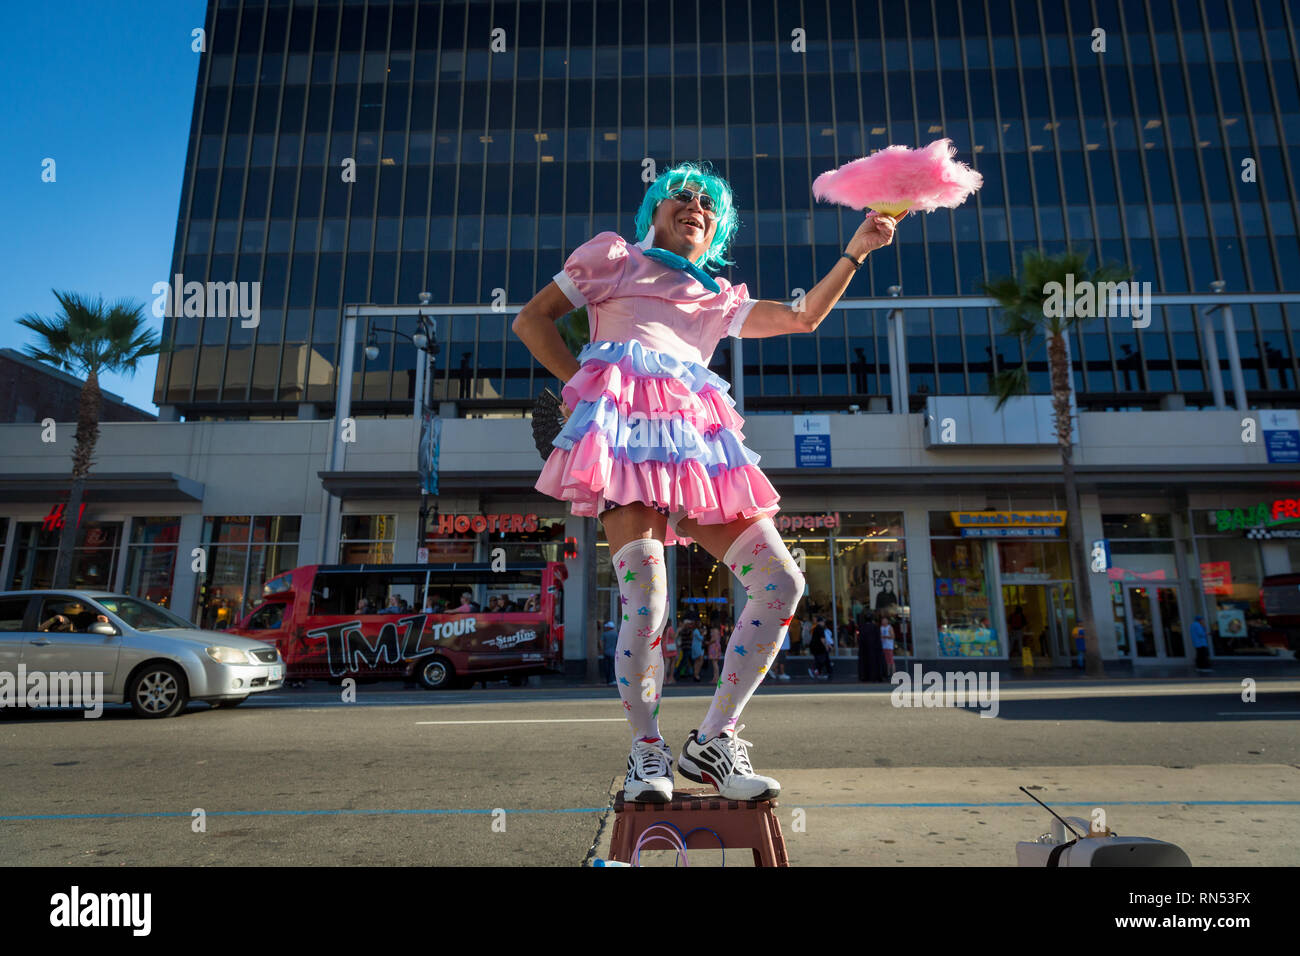 Performer dancing in flamboyant pastel costume on the Hollywood Walk of Fame in Los Angeles, California. - Stock Image